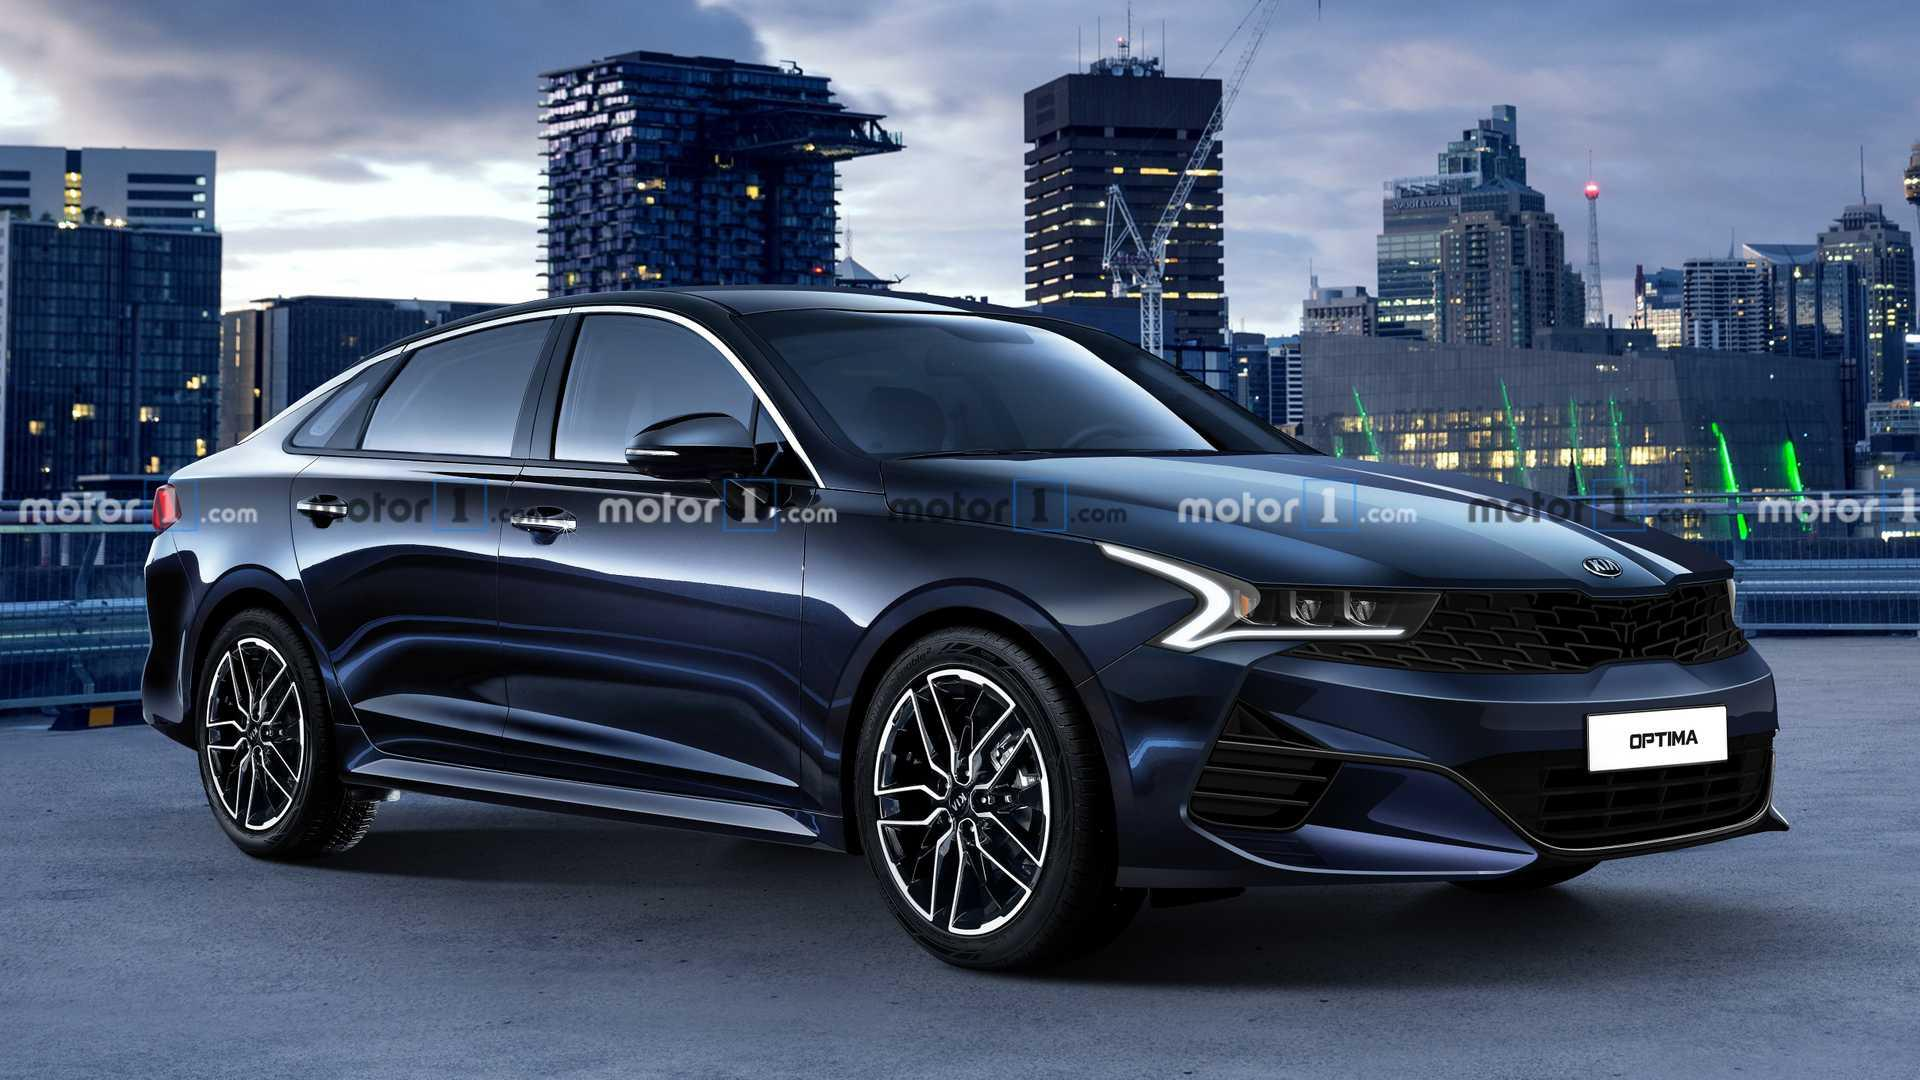 Exclusive: 2021 Kia Optima Could Look Like This